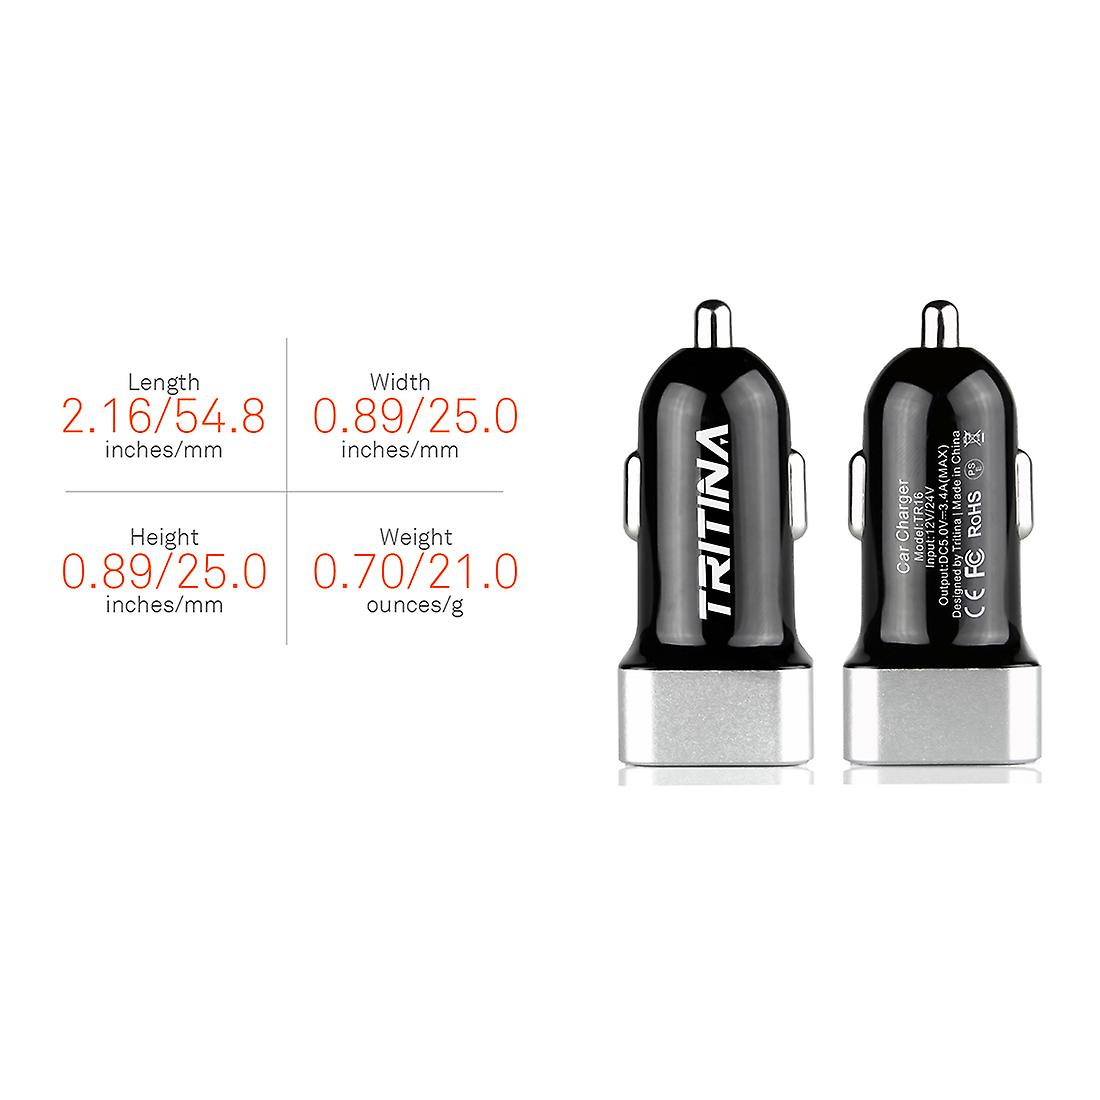 Tritina Car Charger 17W 3.4A Dual USB Port with Charge Sync Cable for iPhone, Samsung and Other Mobile Phone Tablet PC